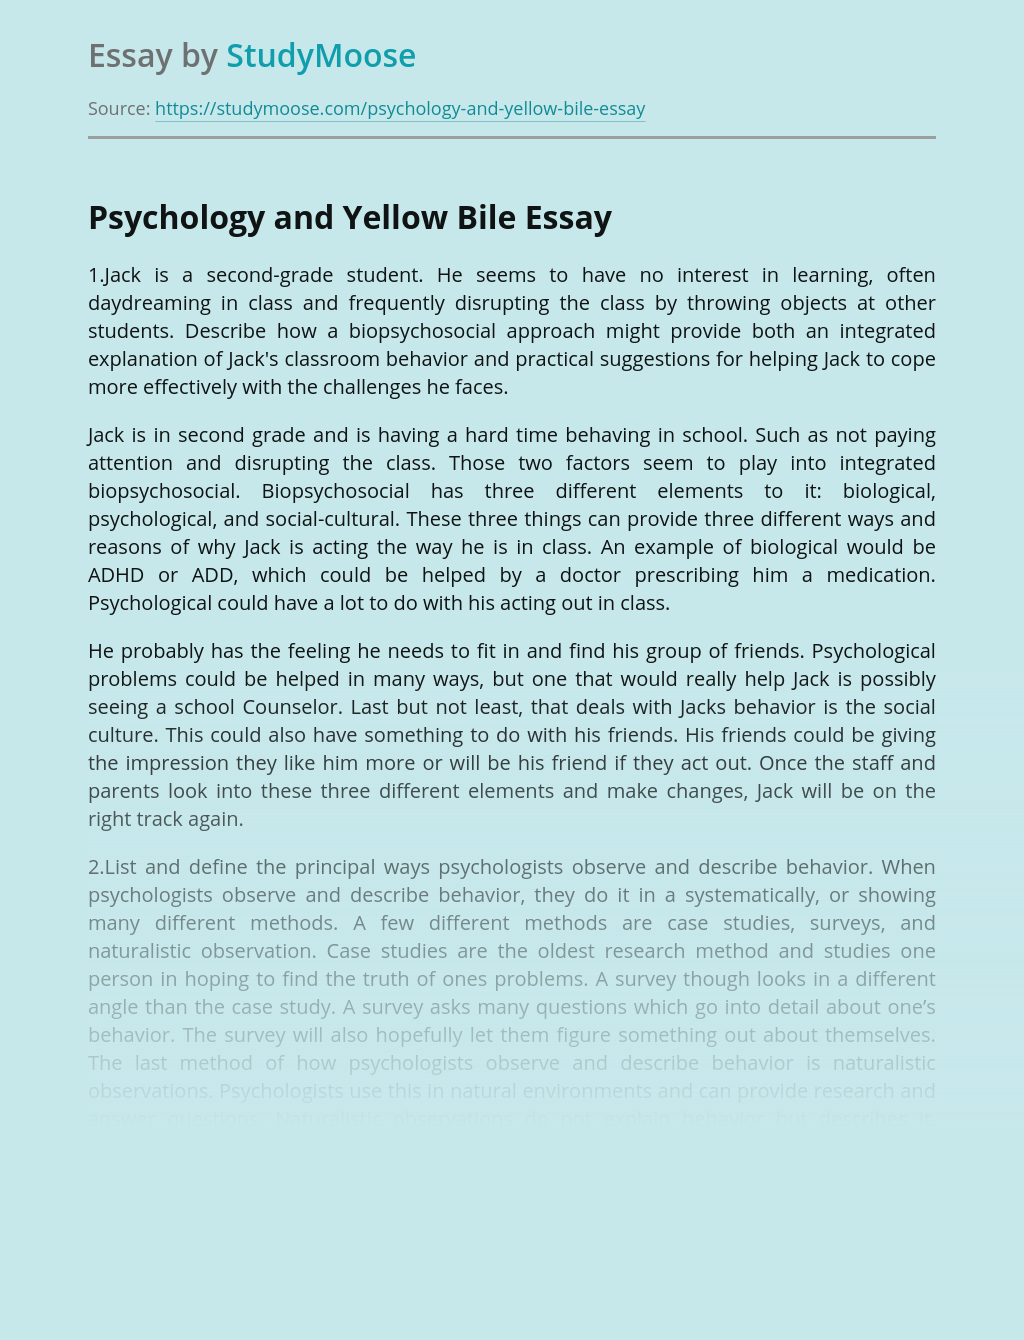 Psychology and Yellow Bile